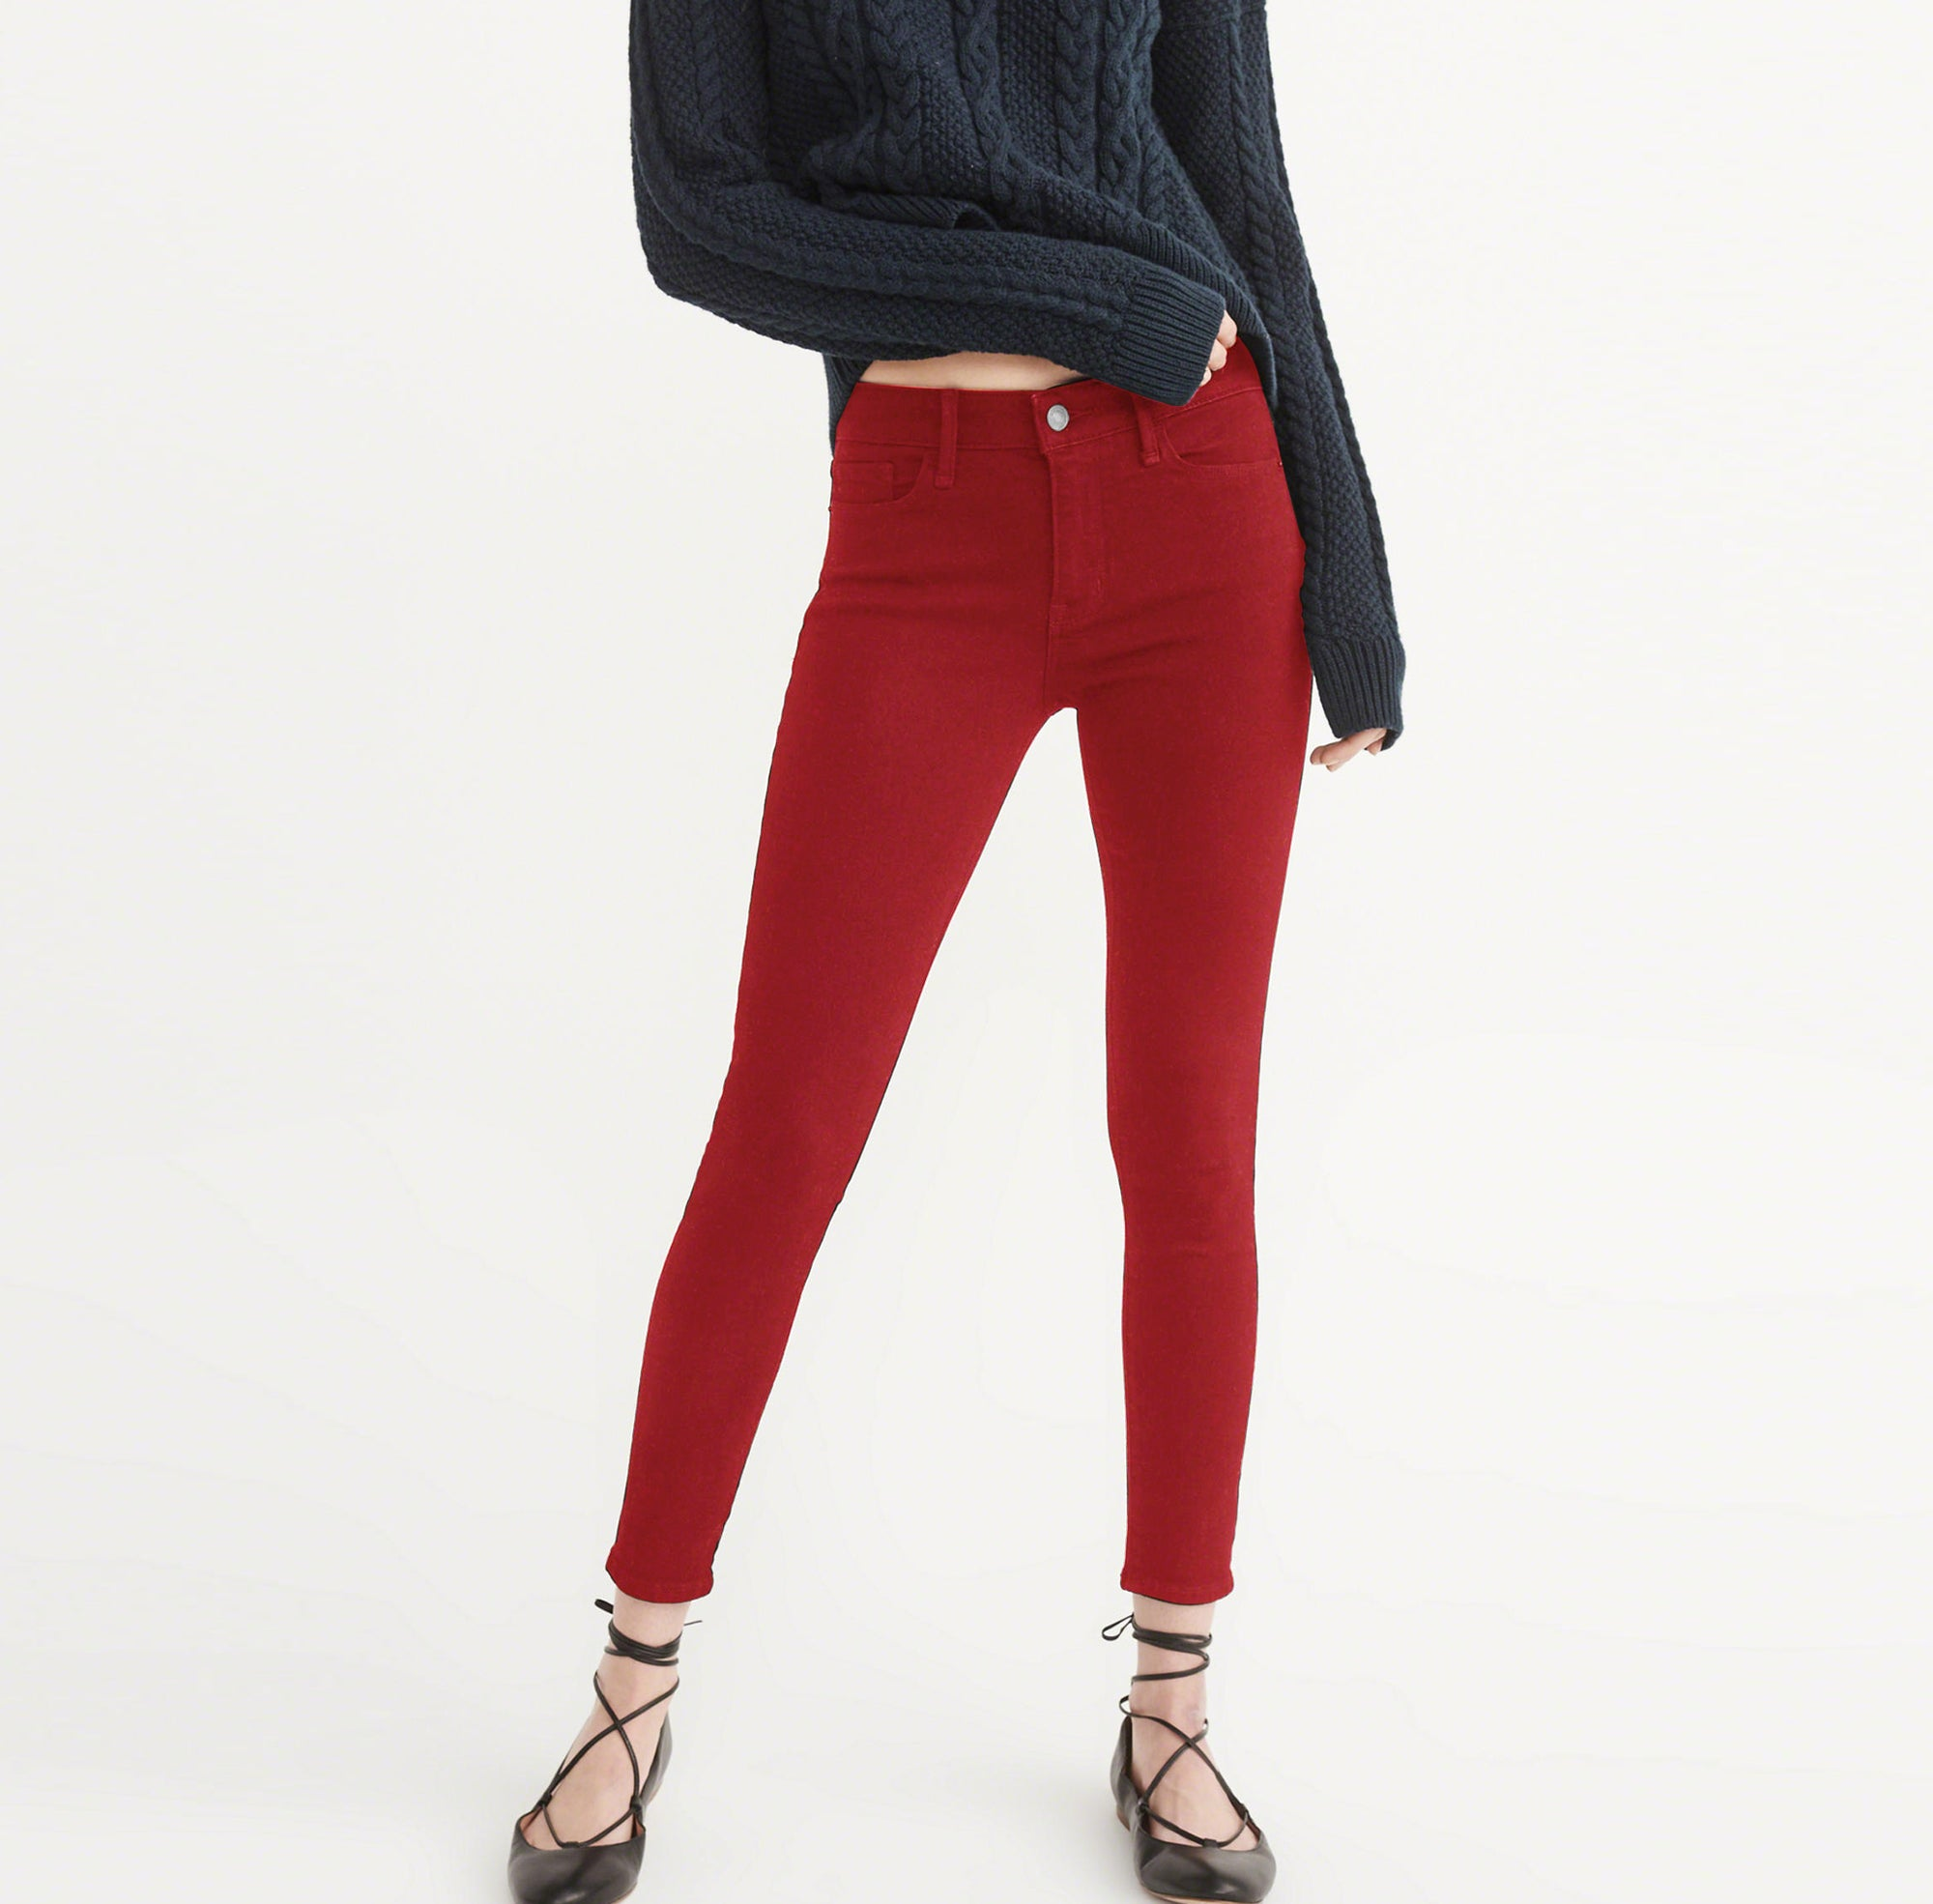 OLD NAVY Stretch Skinny Fit Denim For Ladies-Red-BE4135